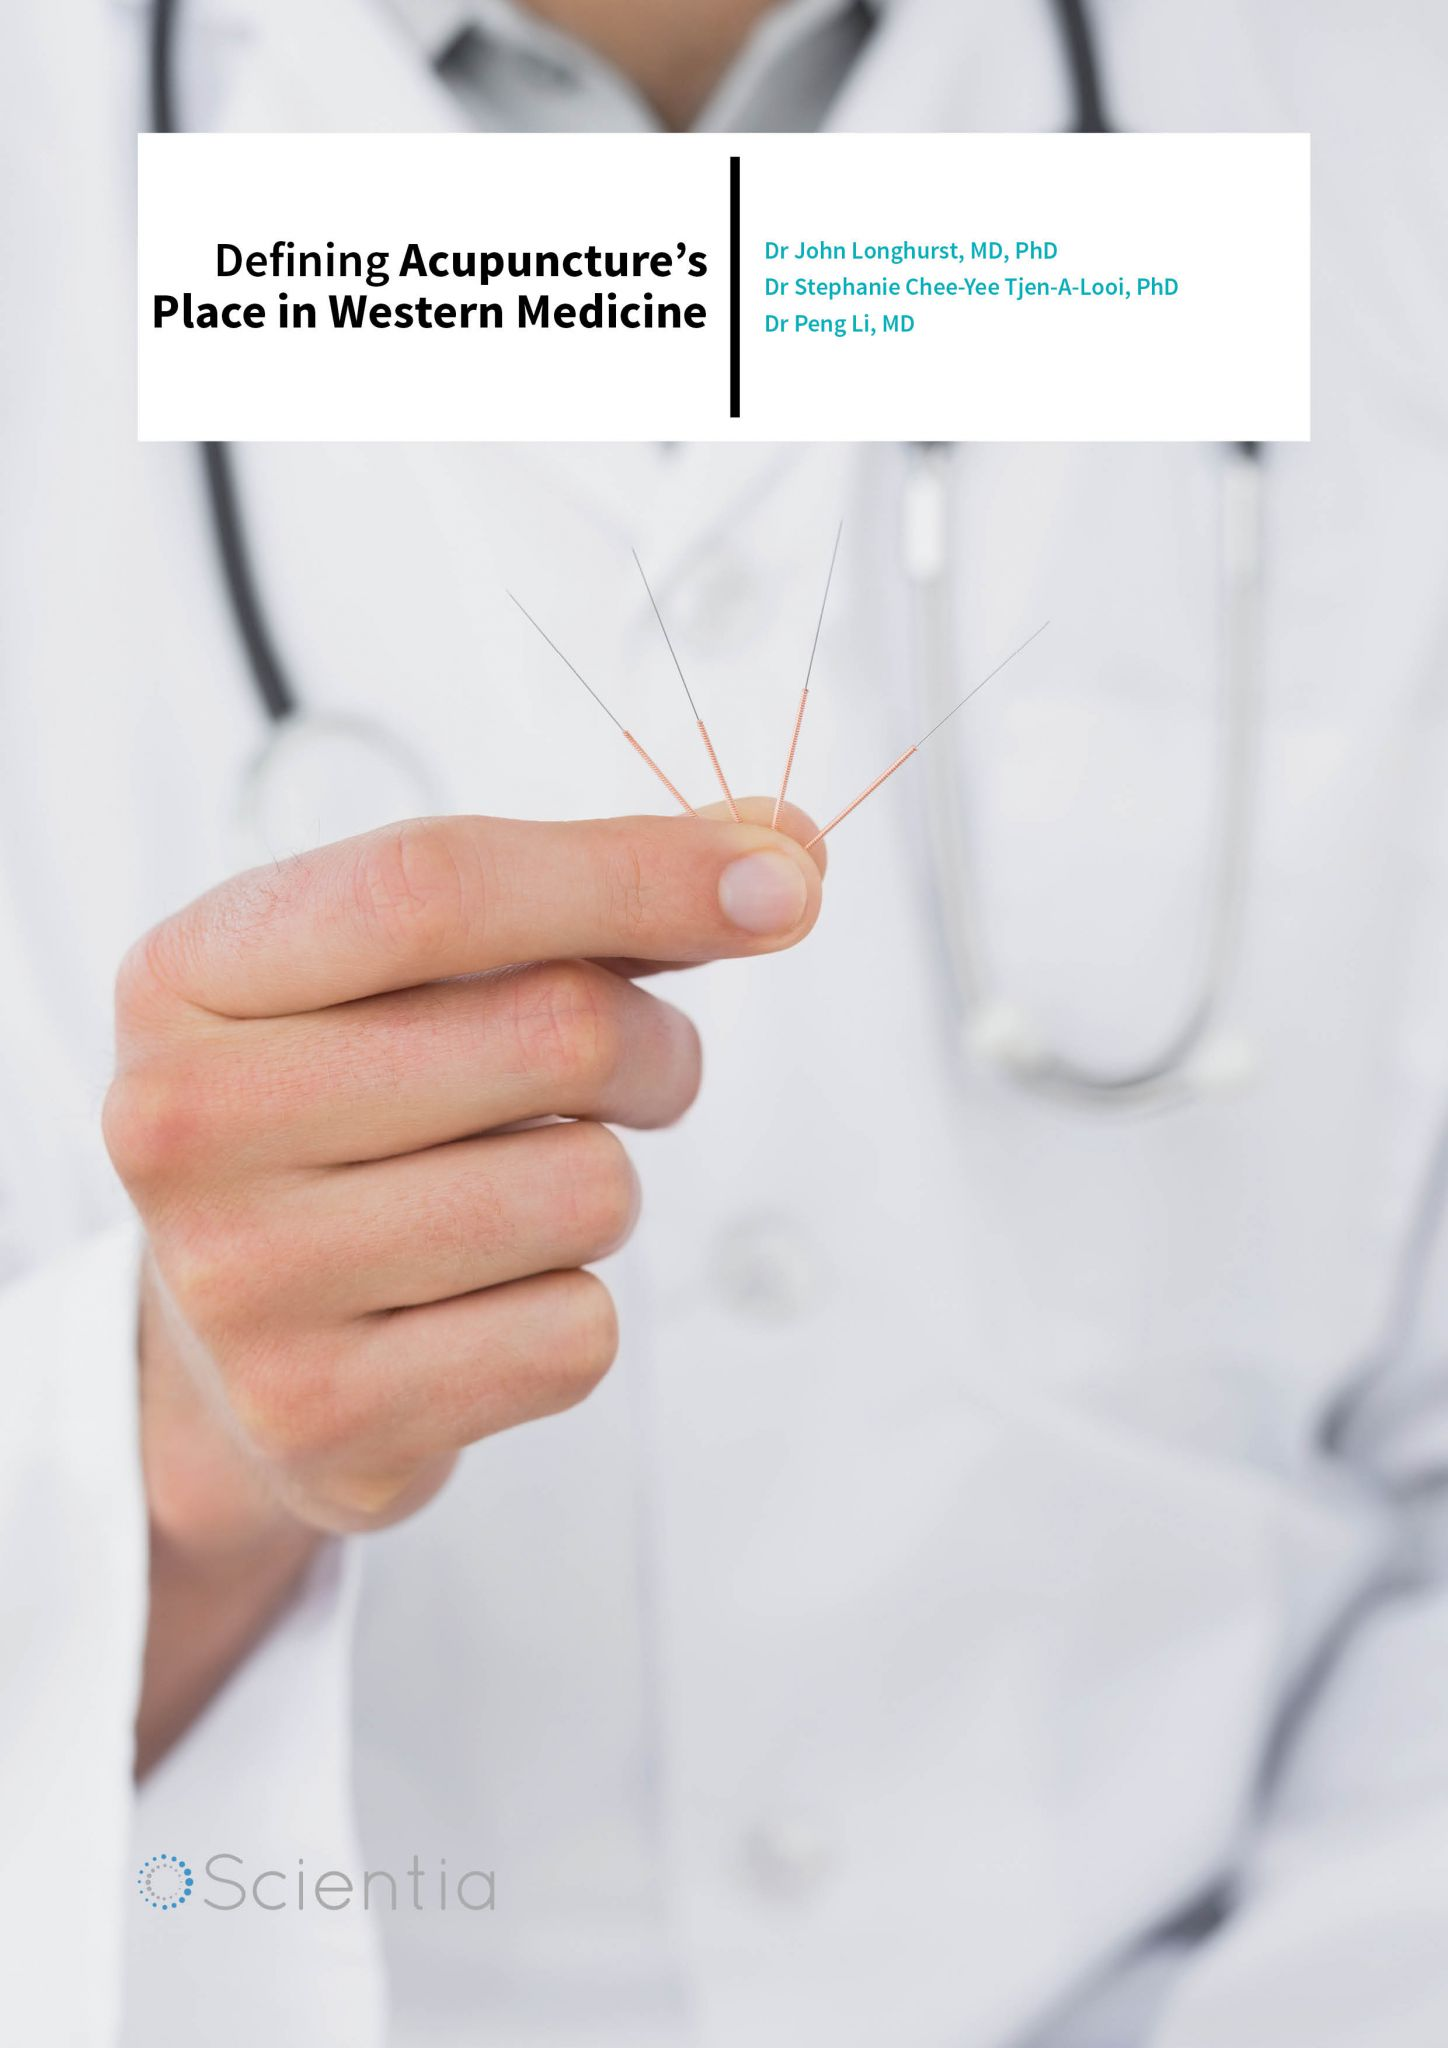 Defining Acupuncture's Place in Western Medicine